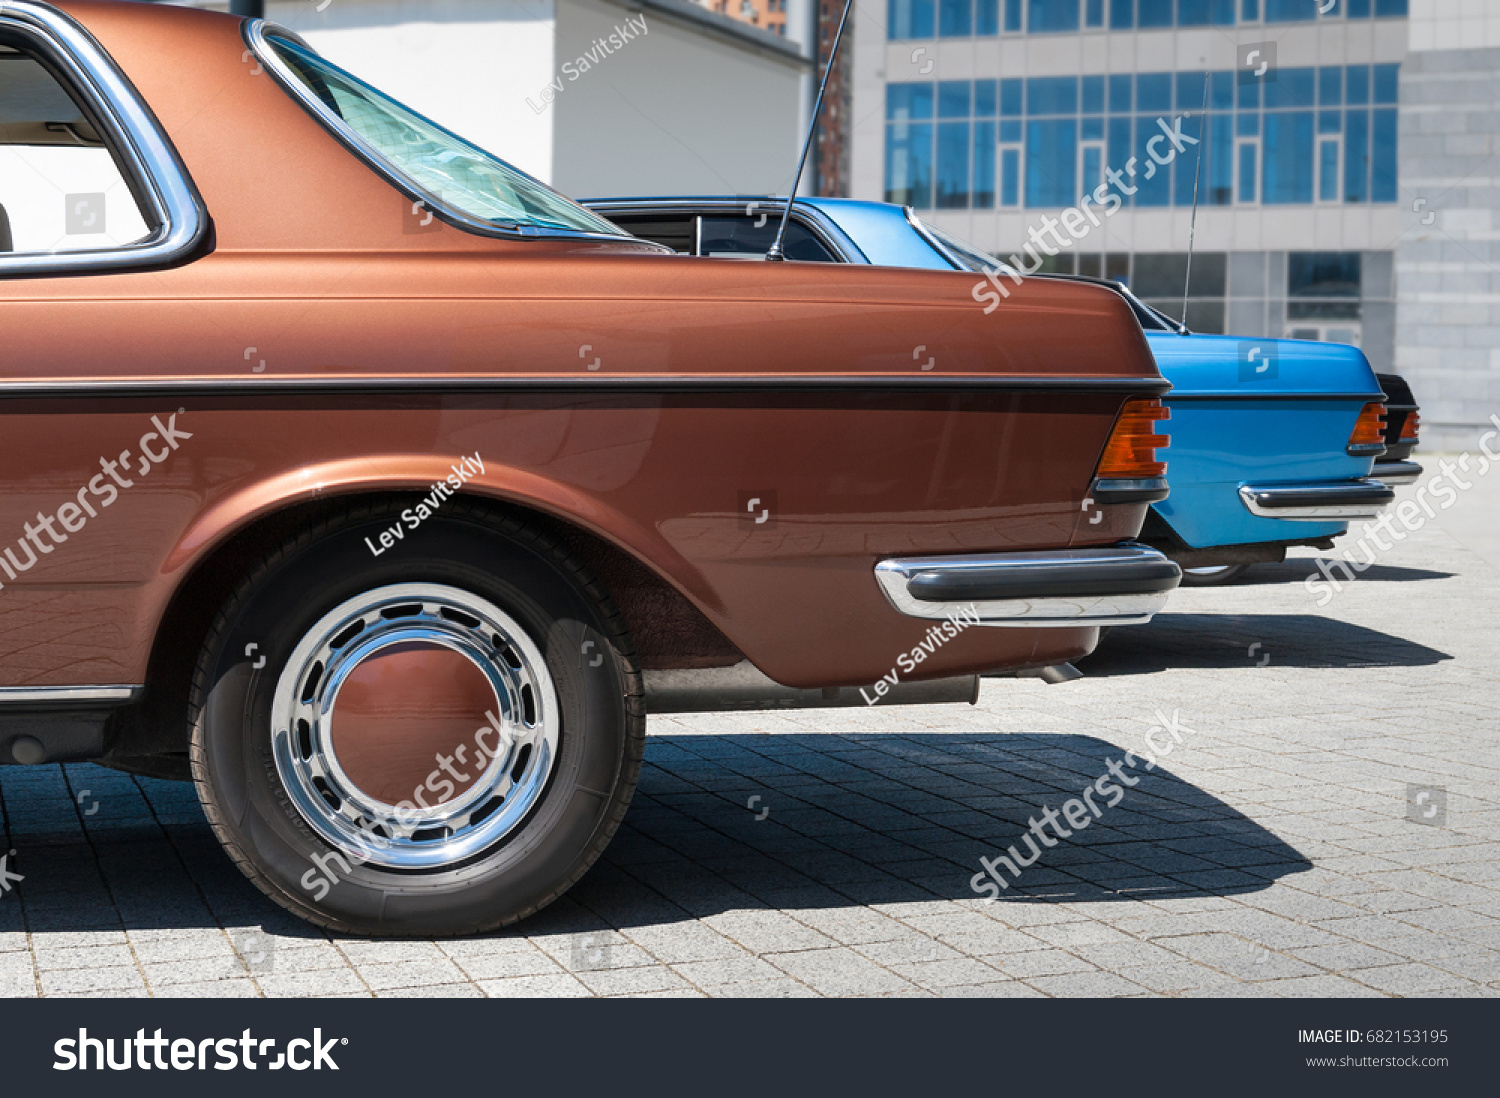 Rear View On Vintage Cars Parked Stock Photo 682153195 - Shutterstock